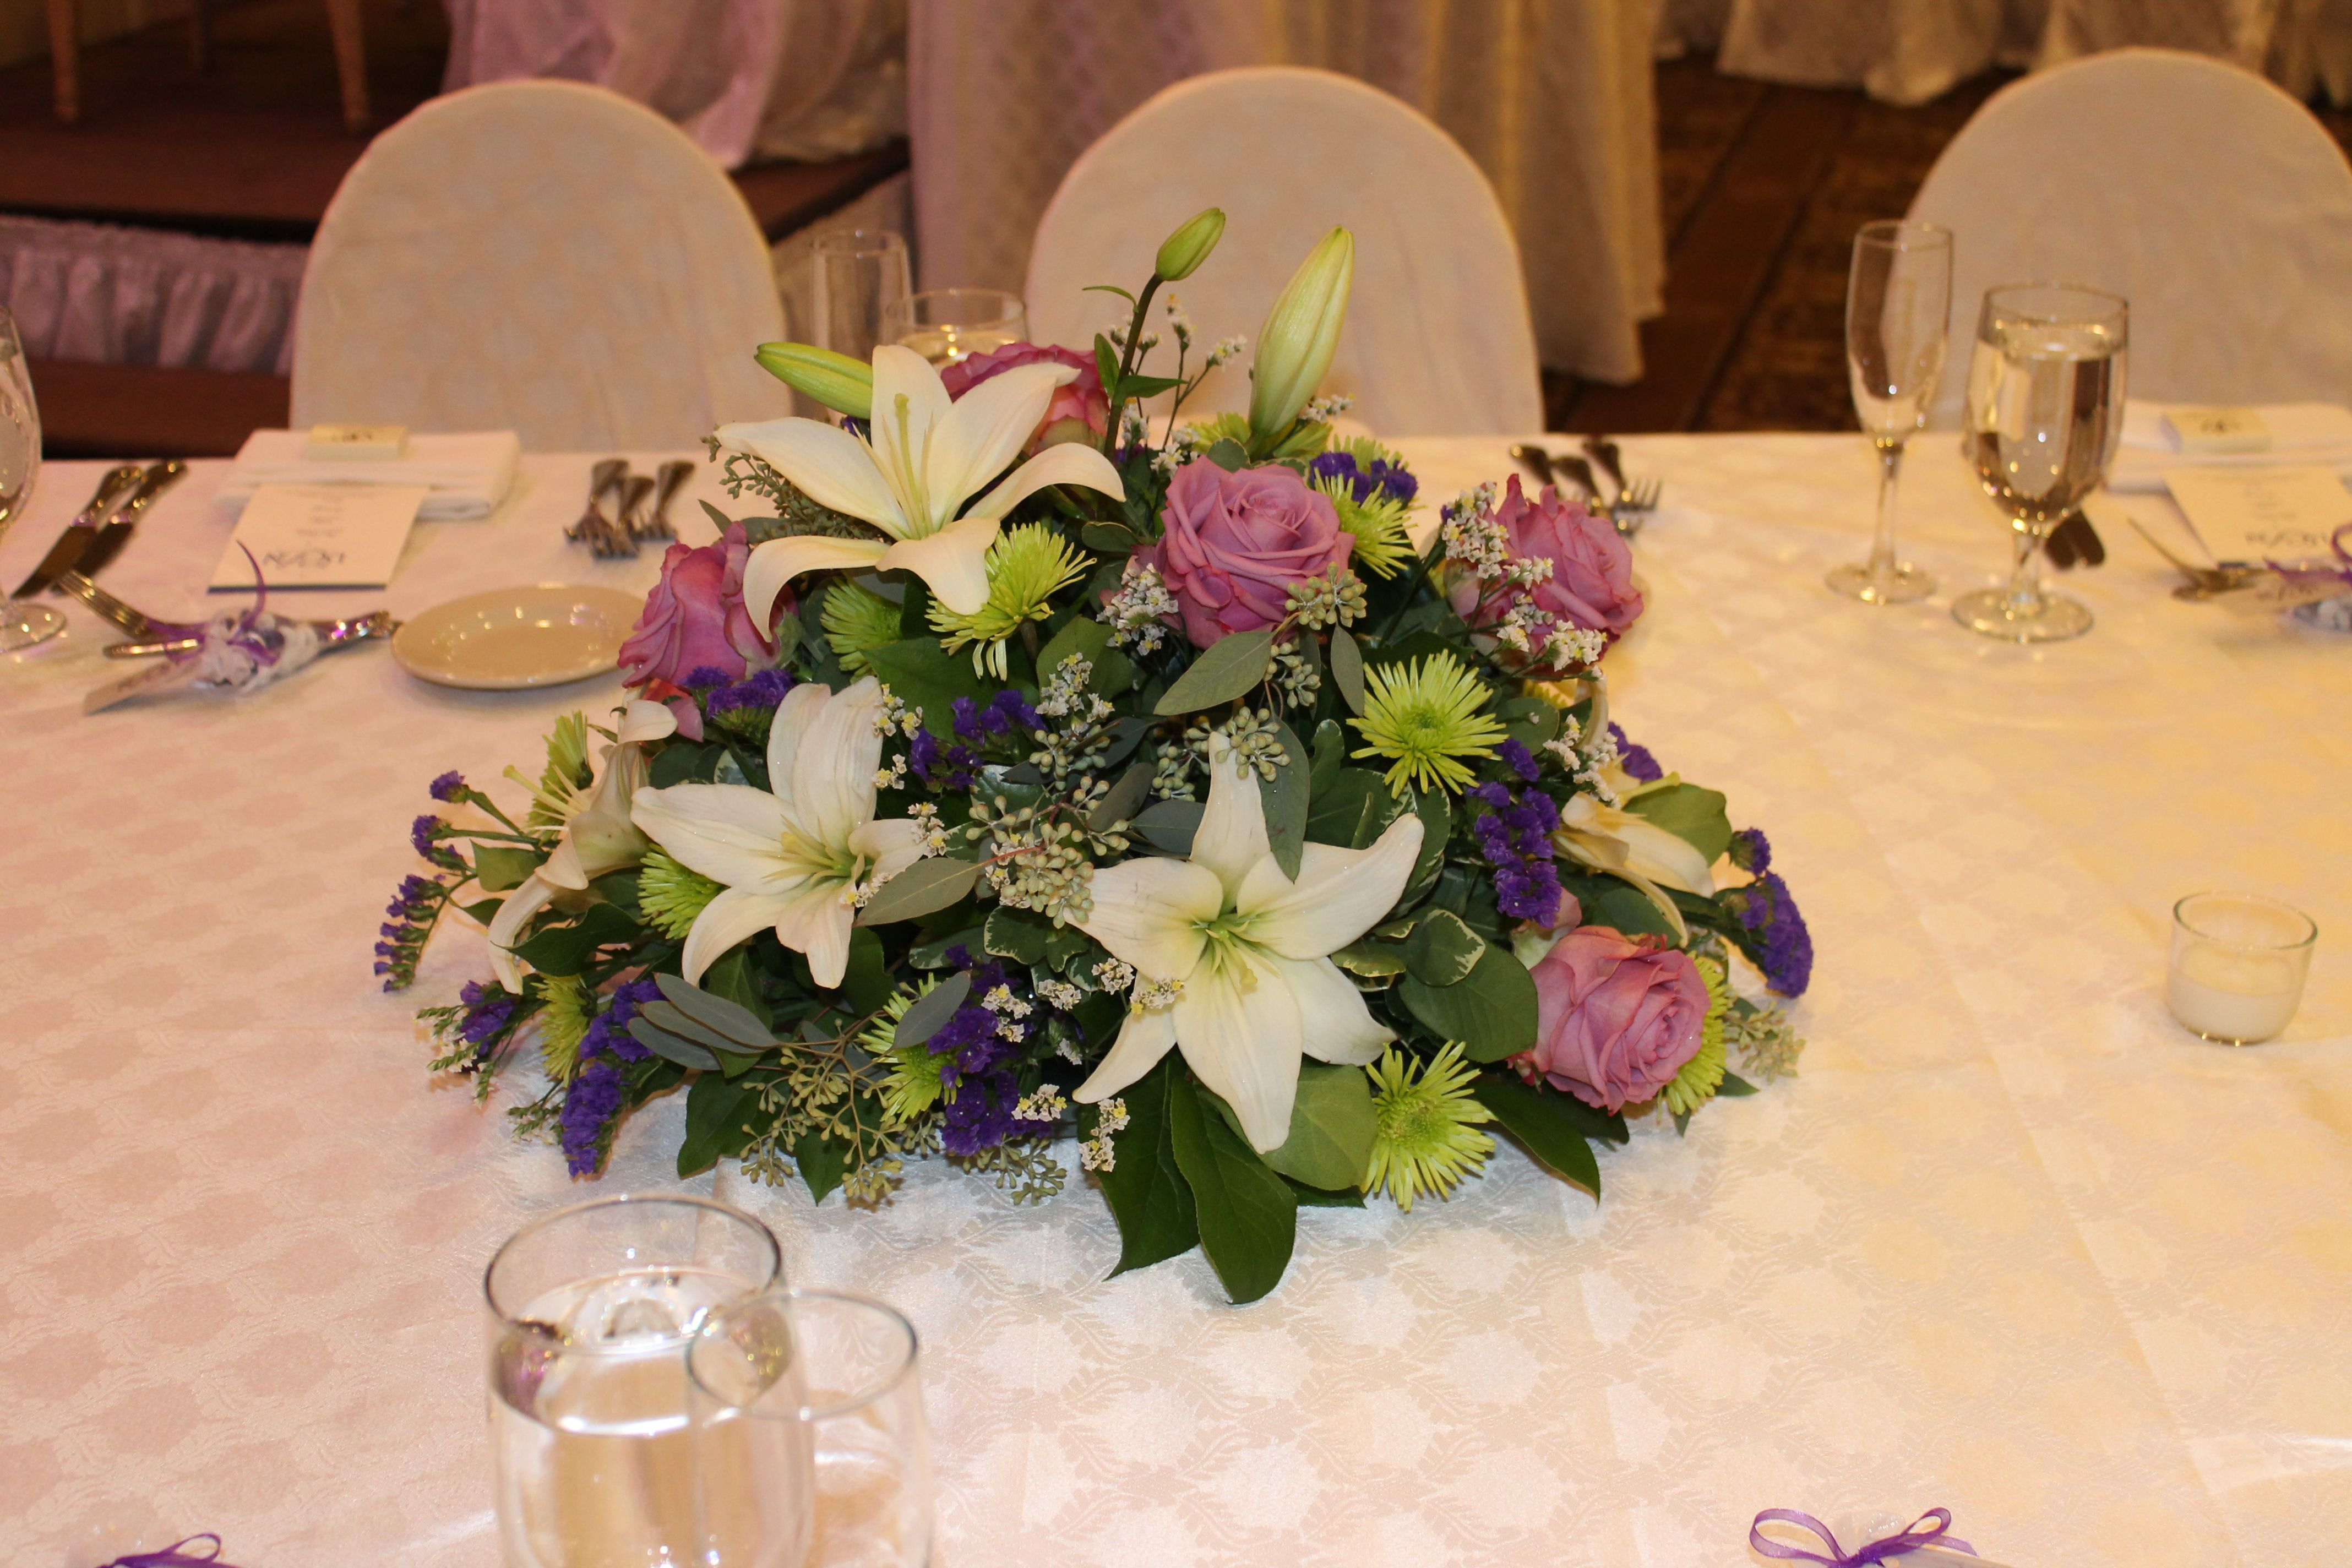 Wedding centerpiece of white lilies, purple roses, eucalyptus and green buttons